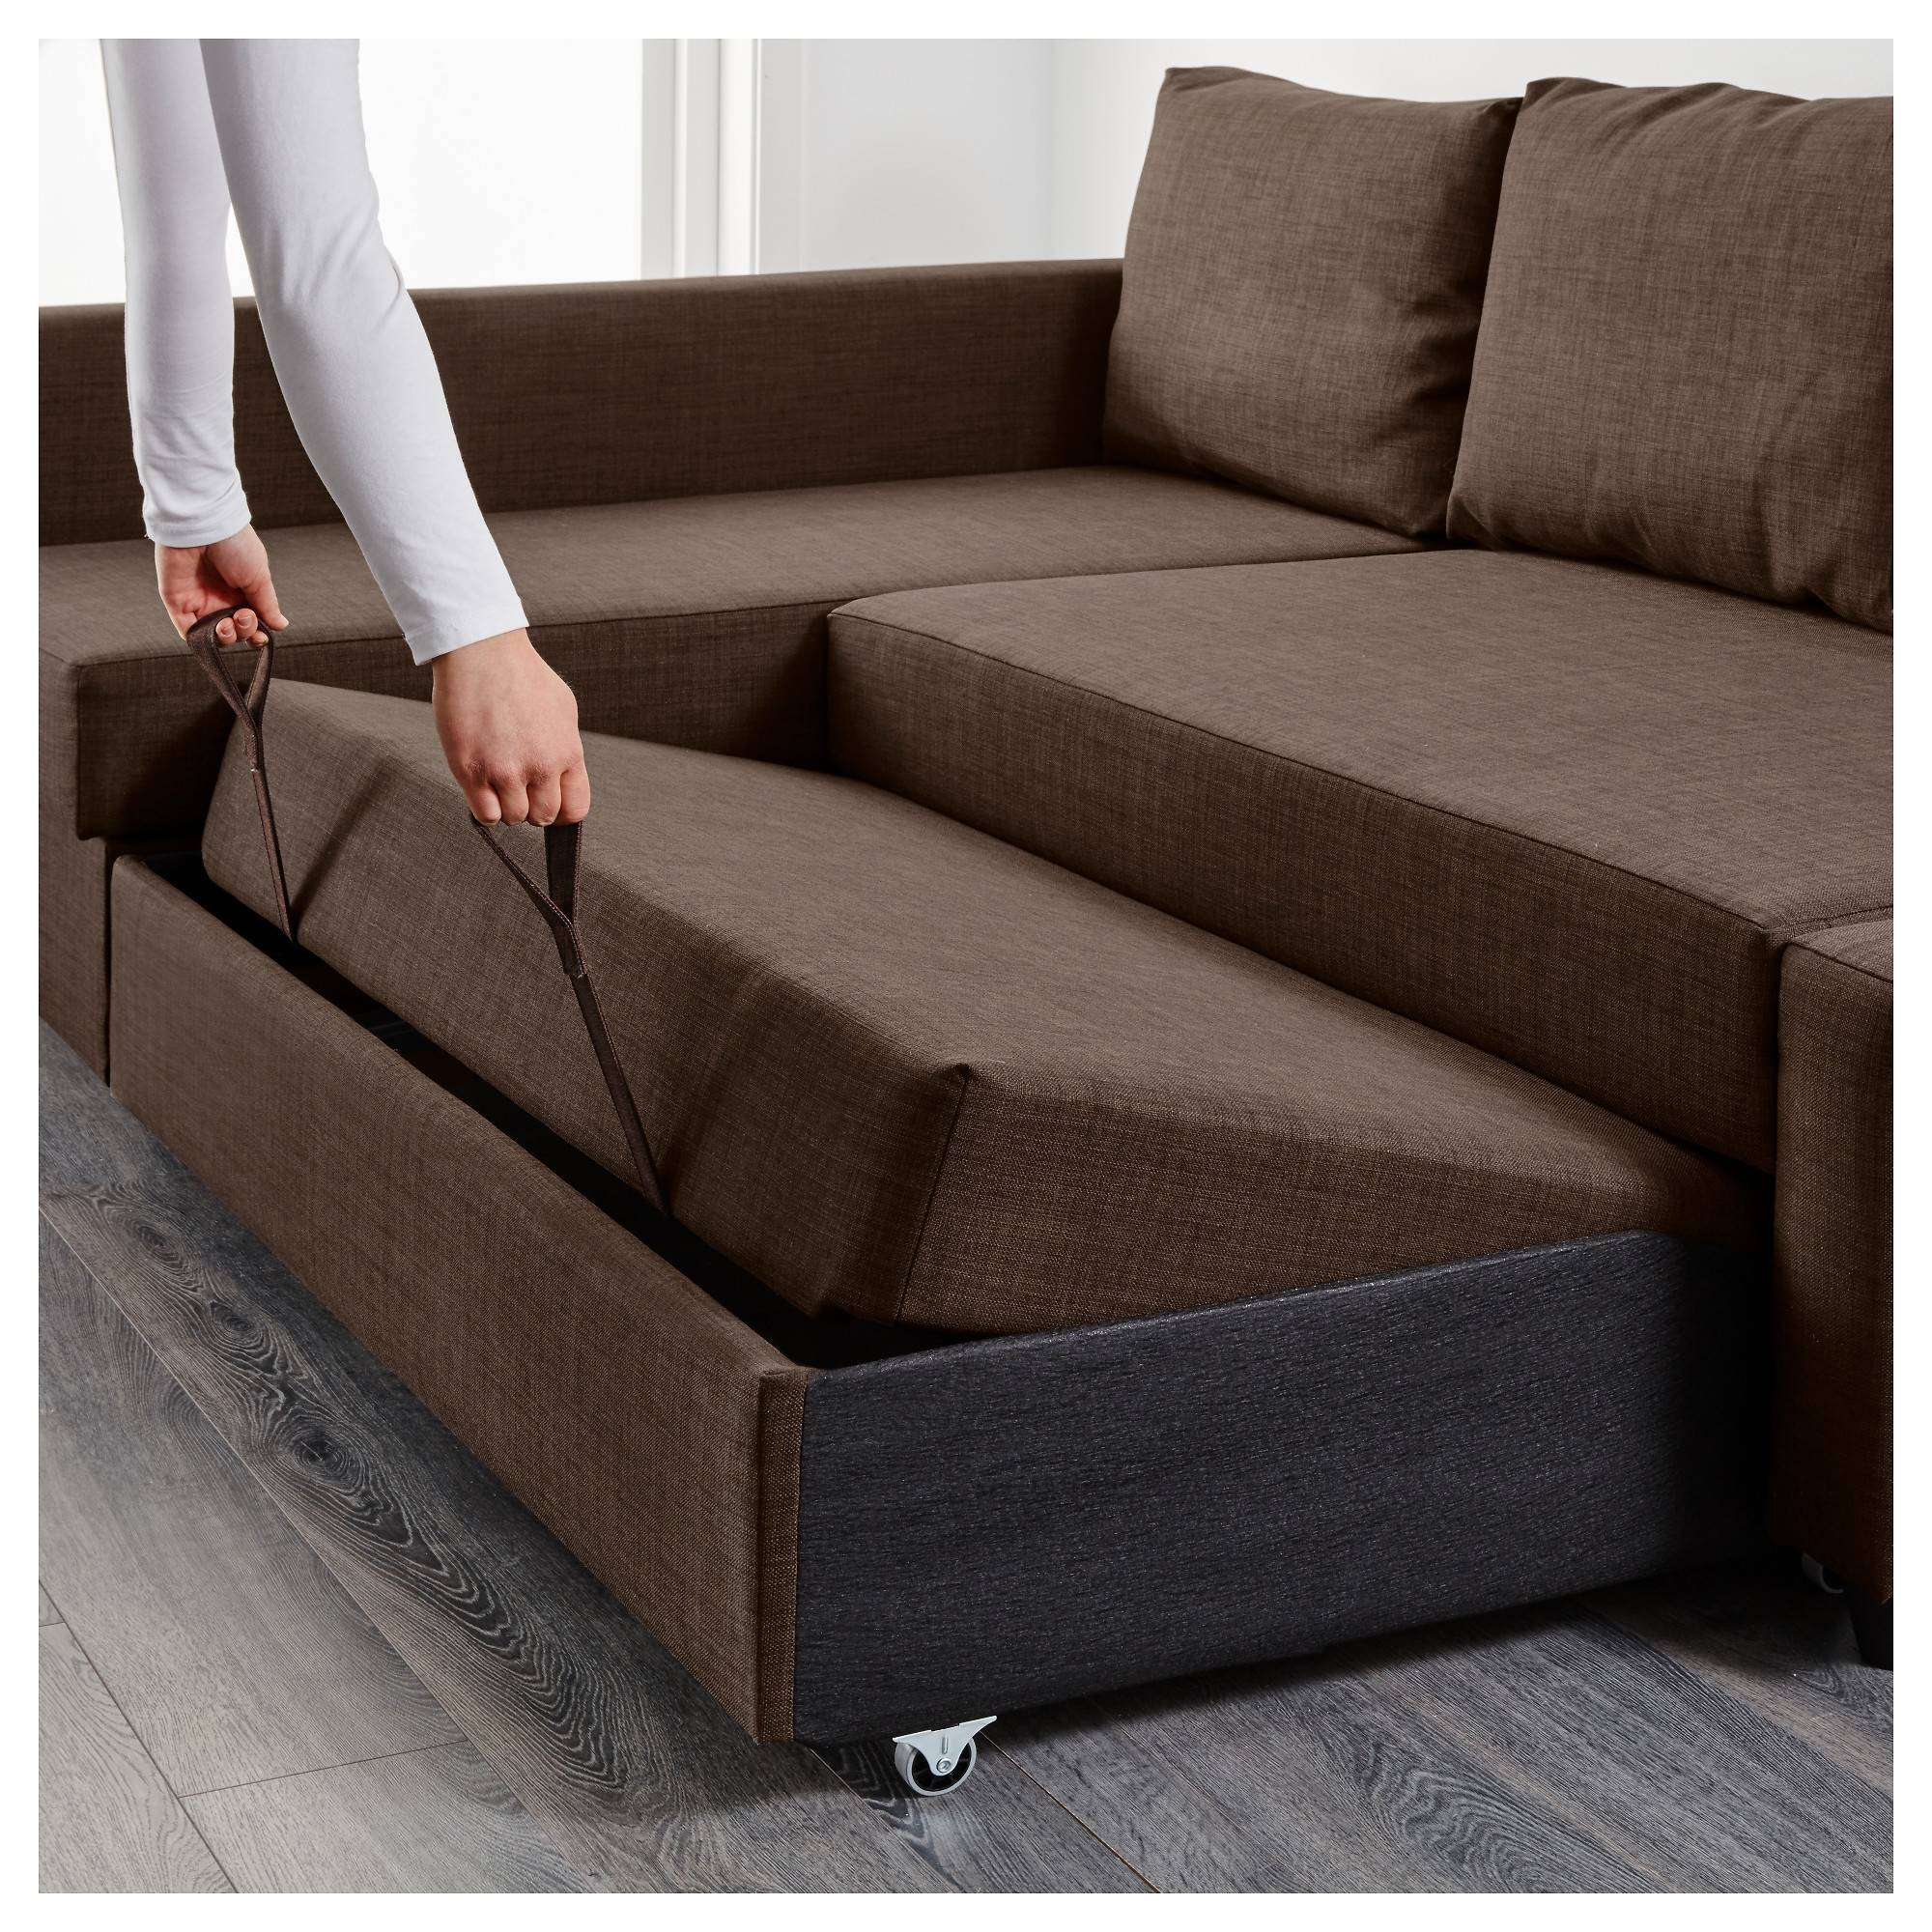 Friheten Sleeper Sectional,3 Seat W/storage - Skiftebo Dark Gray in Sofa Beds With Storages (Image 14 of 30)